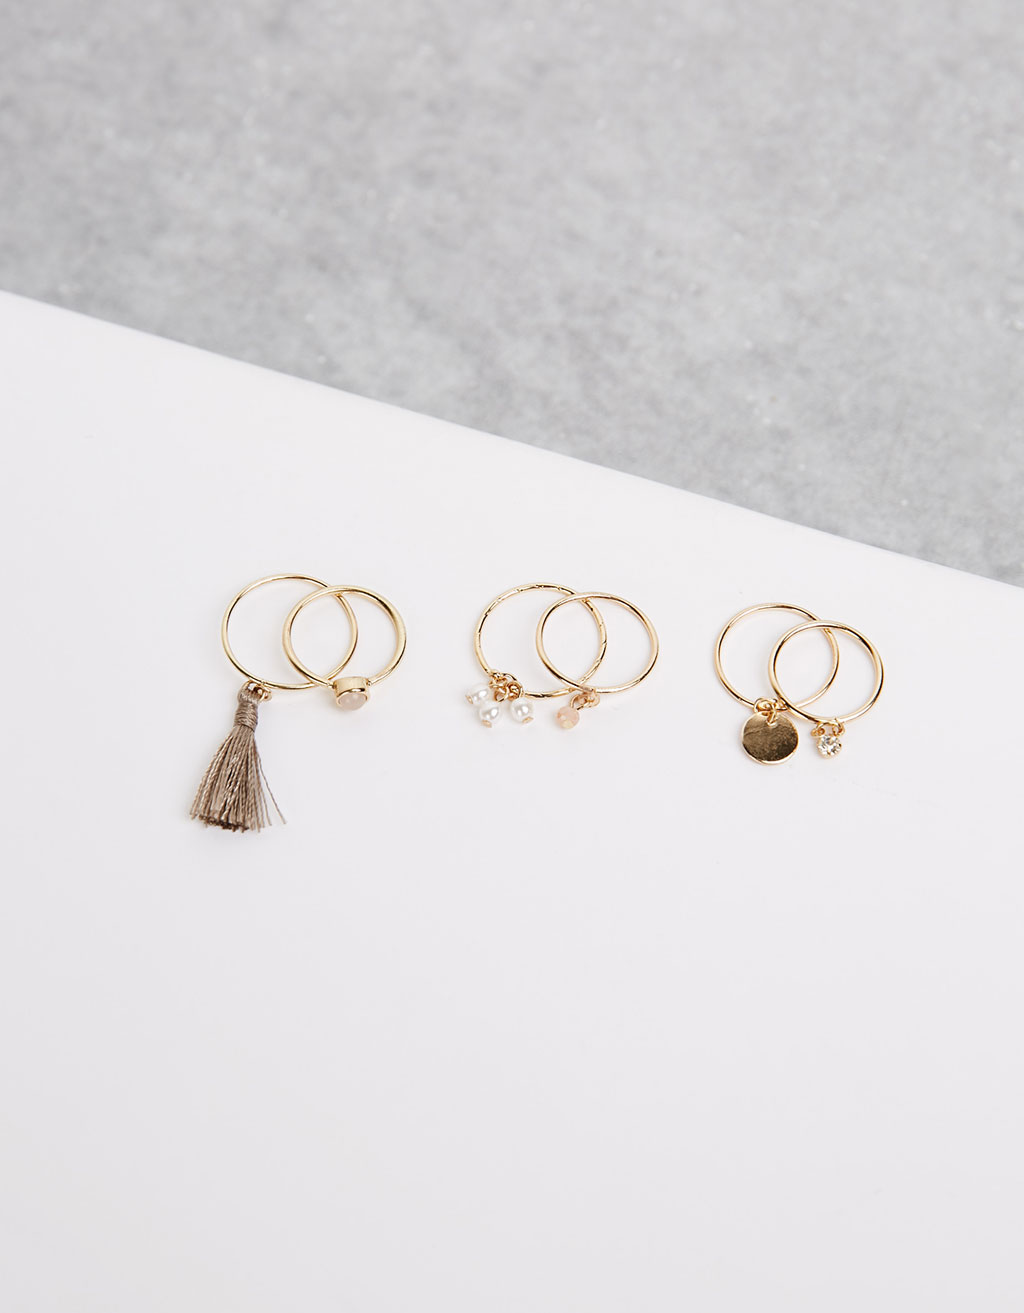 Tassle ring set